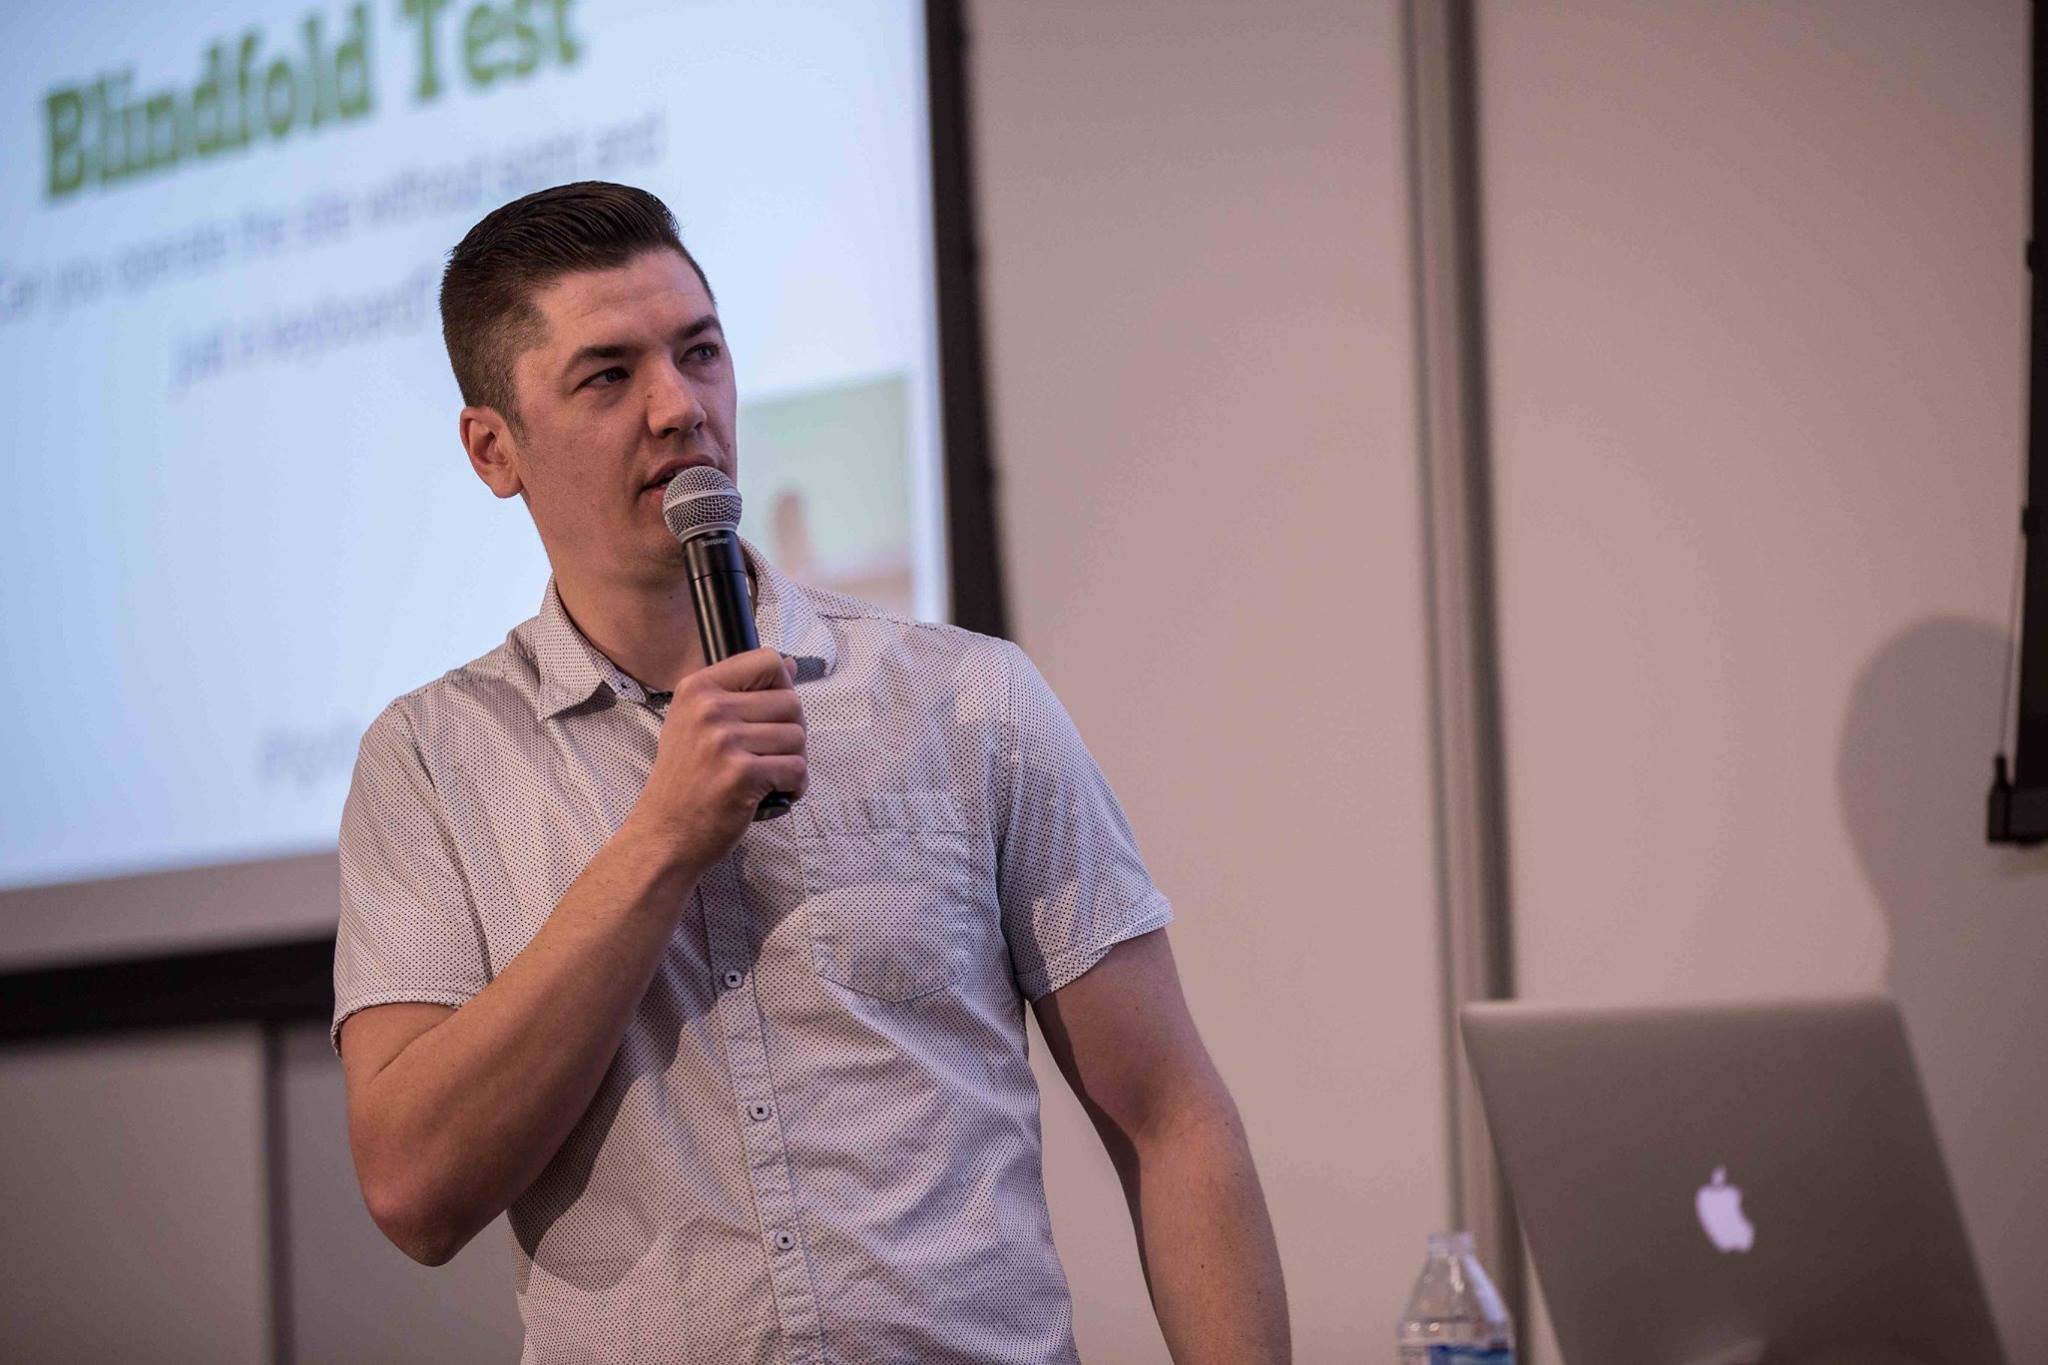 Tyler speaking at WordCamp